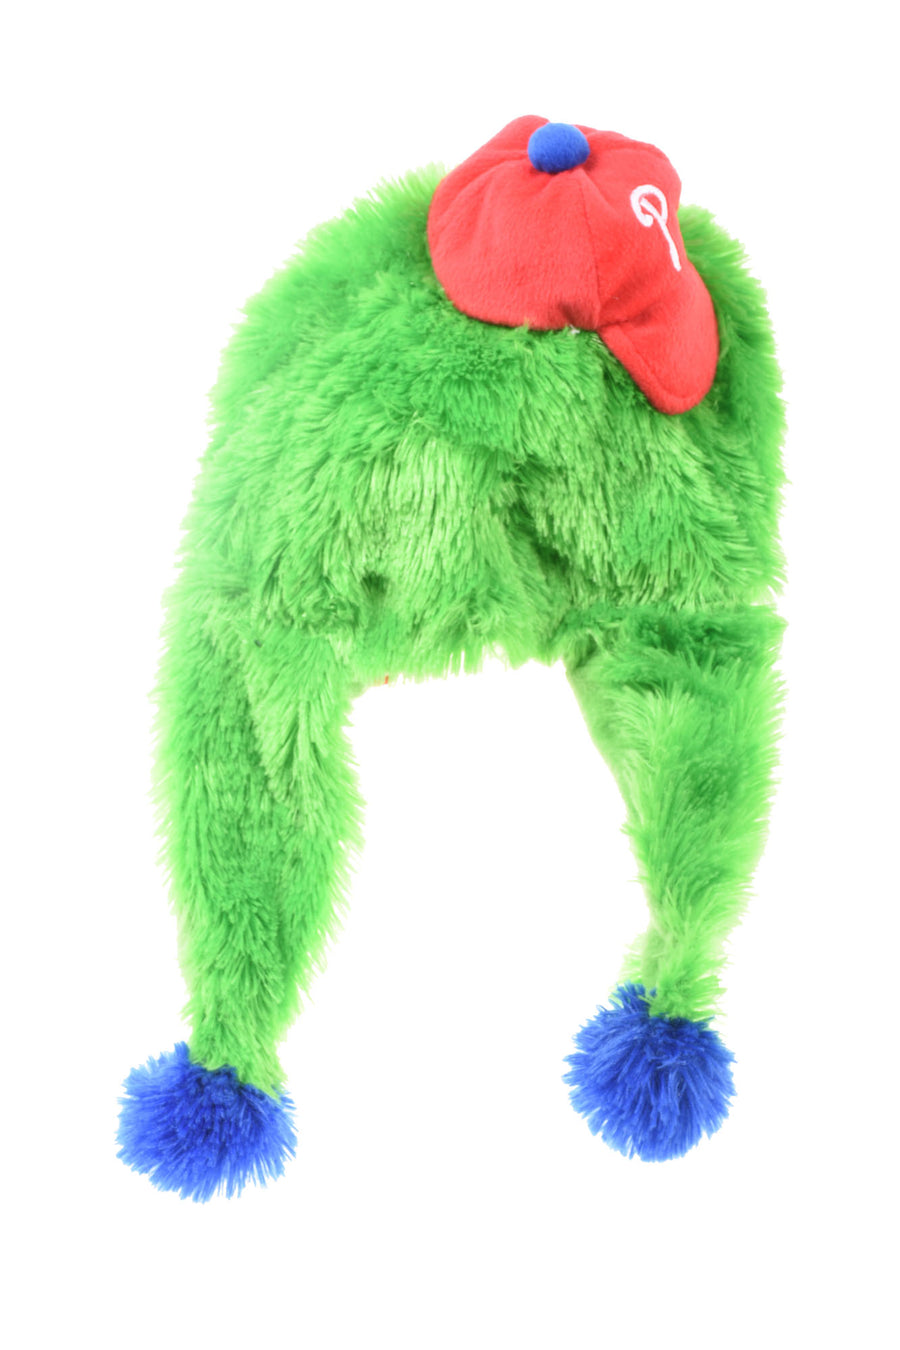 USED Disney Women's Phillies Phanatic Hat N/A Green